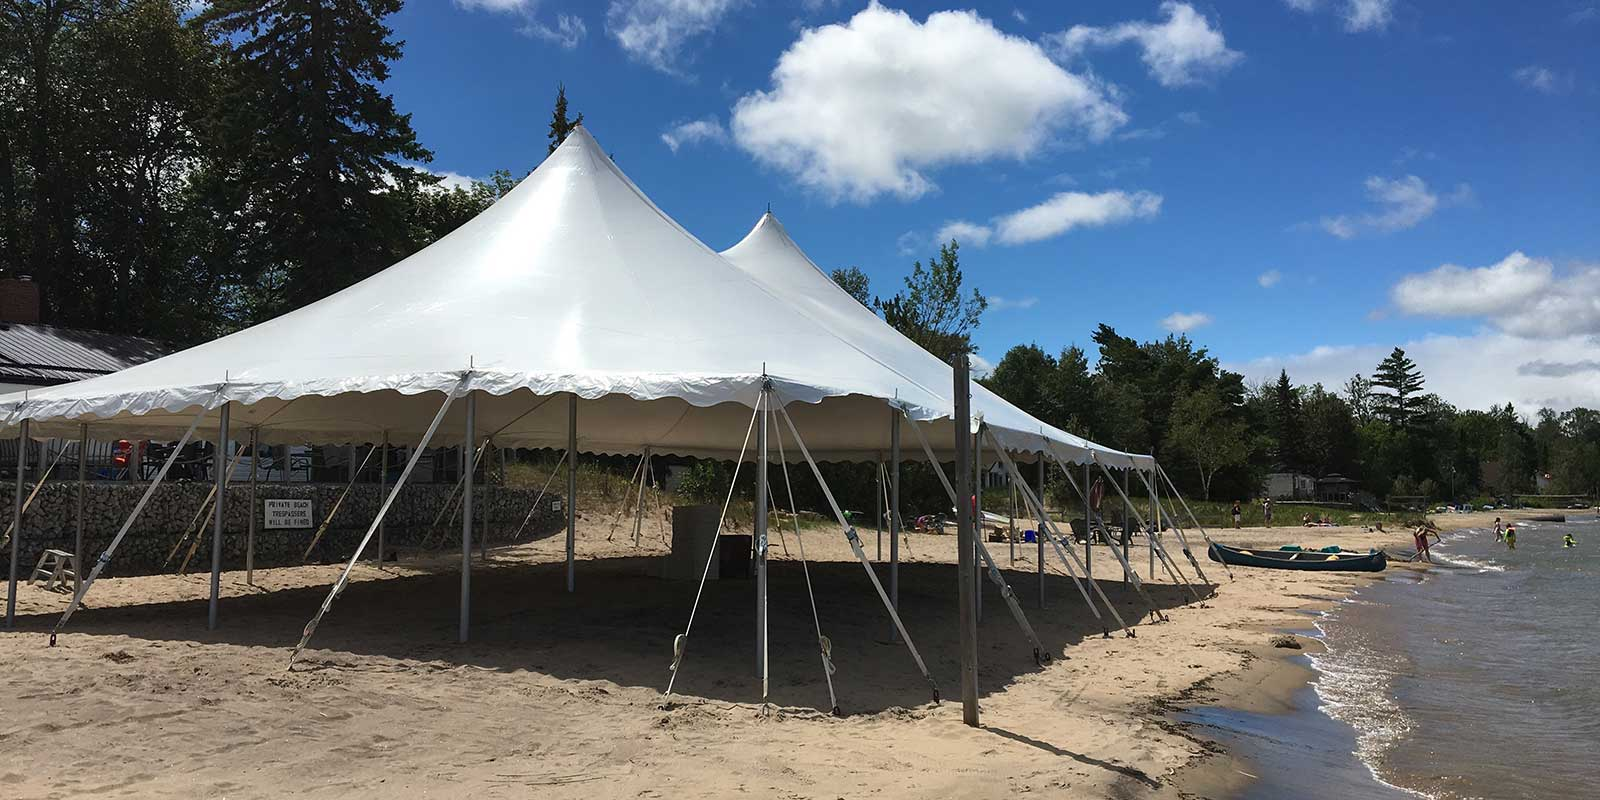 Rent party tents at Happenings Party Rentals in Collingwood ON